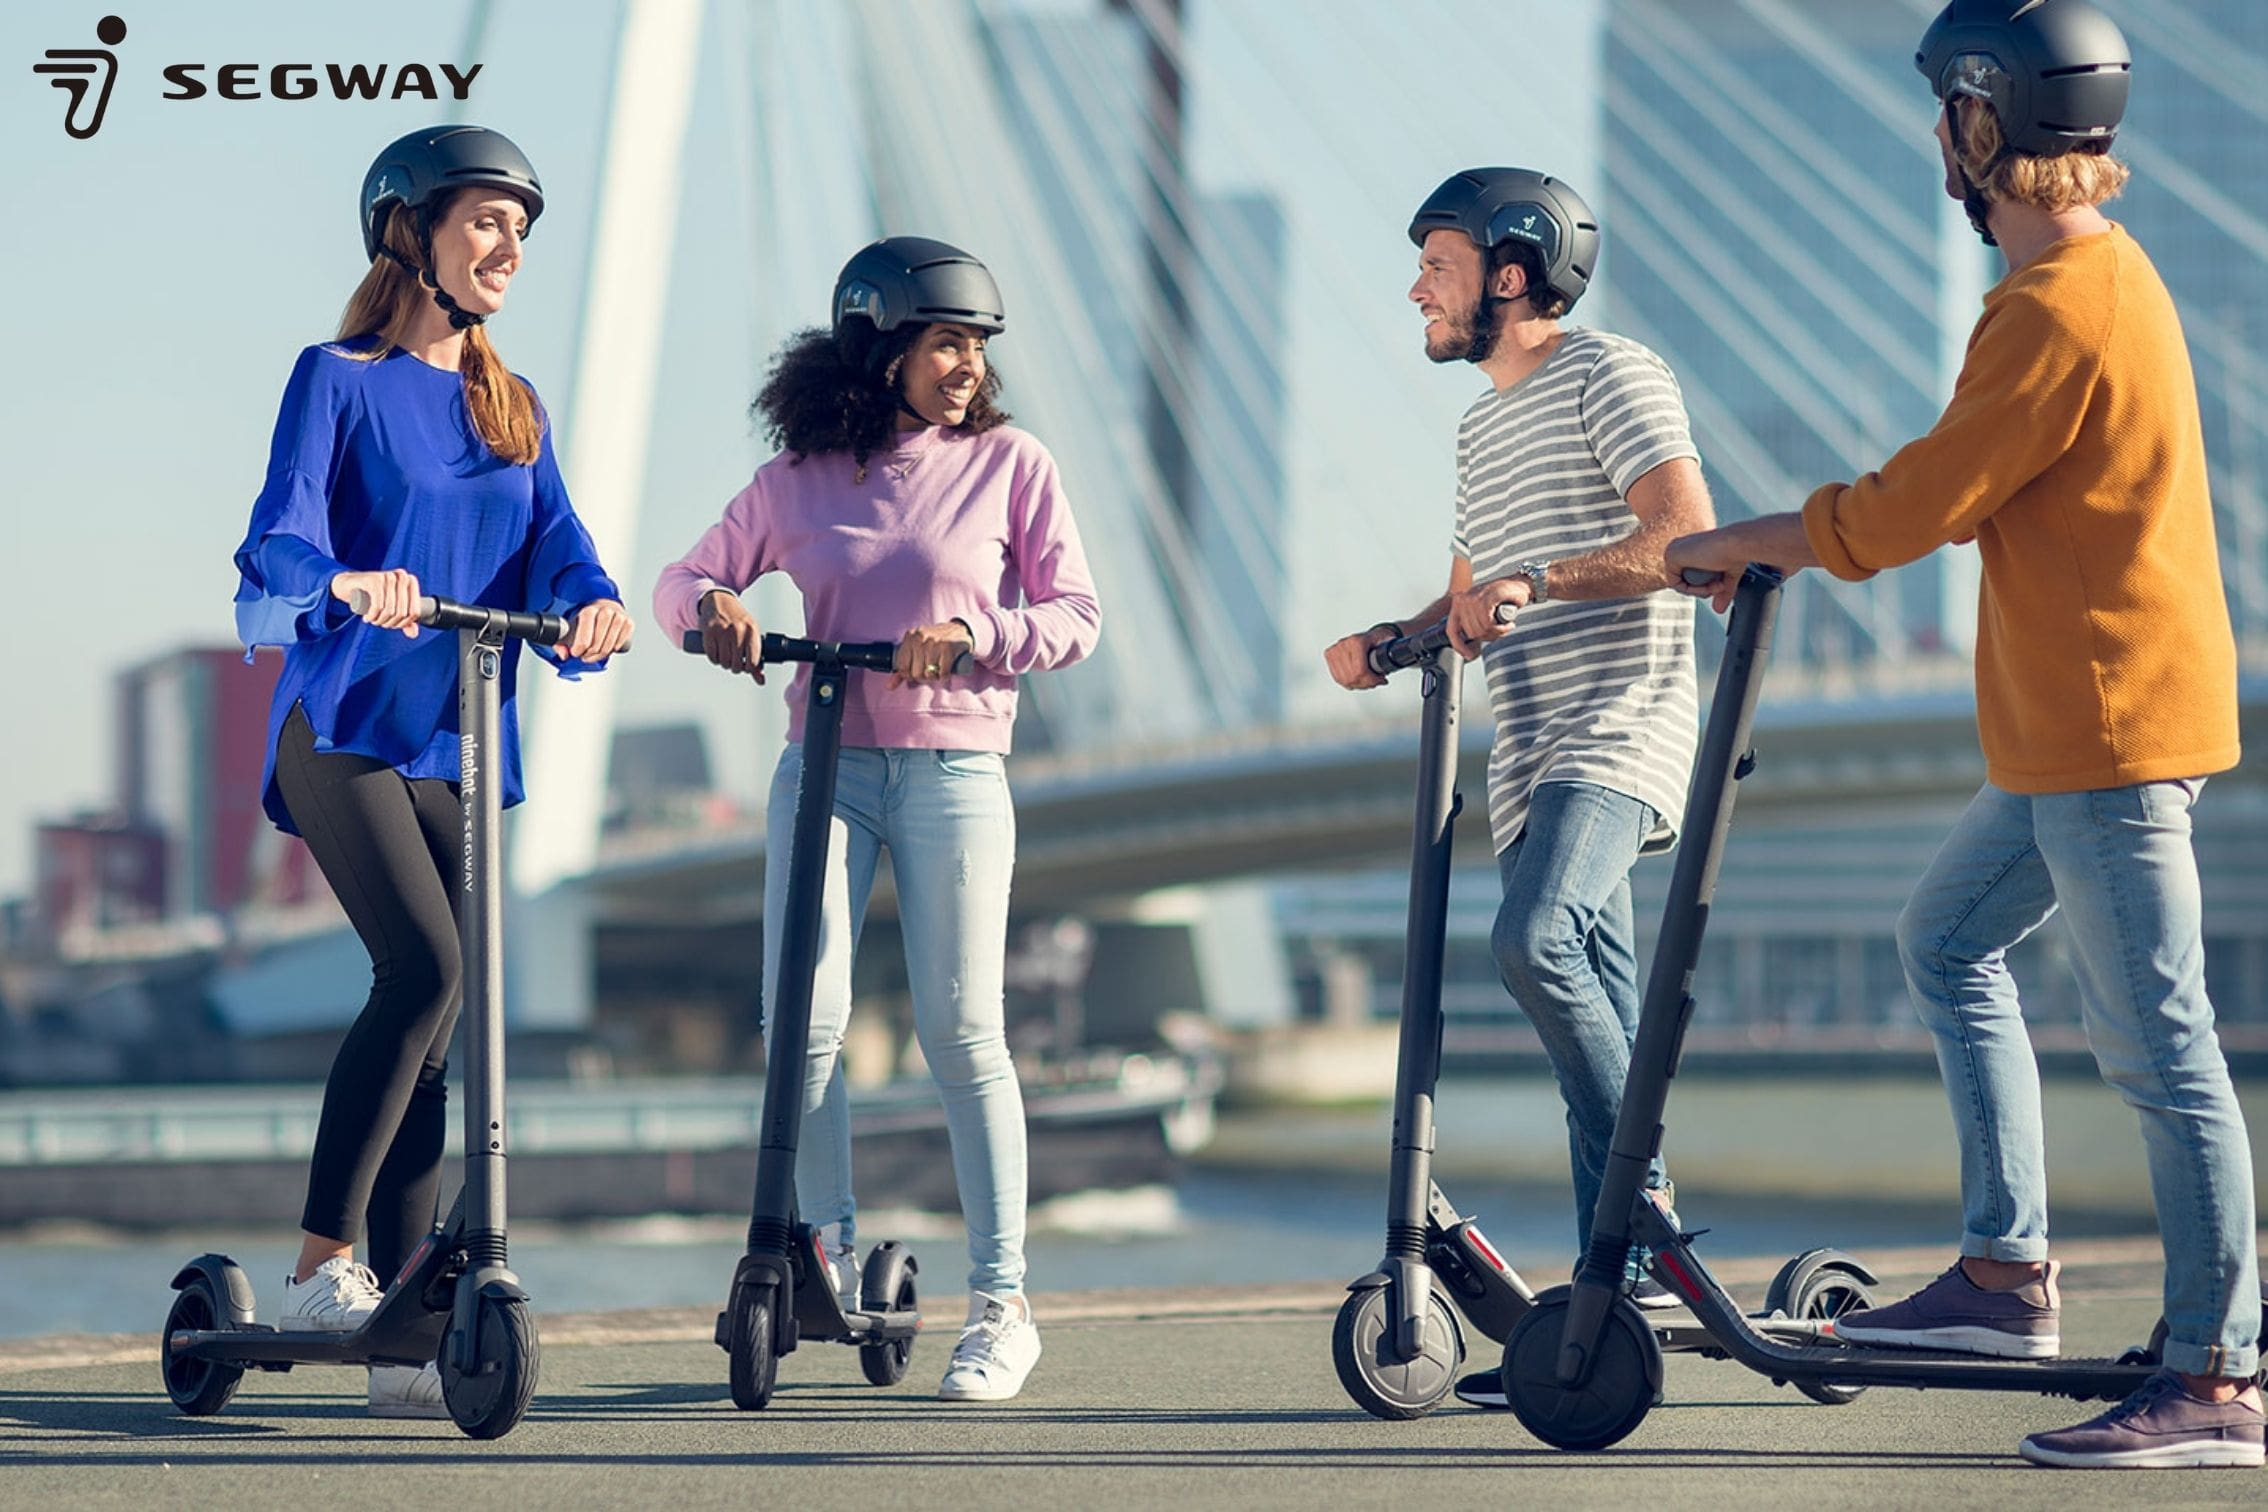 Segway Electric Scooters & Gokarts Collection Page